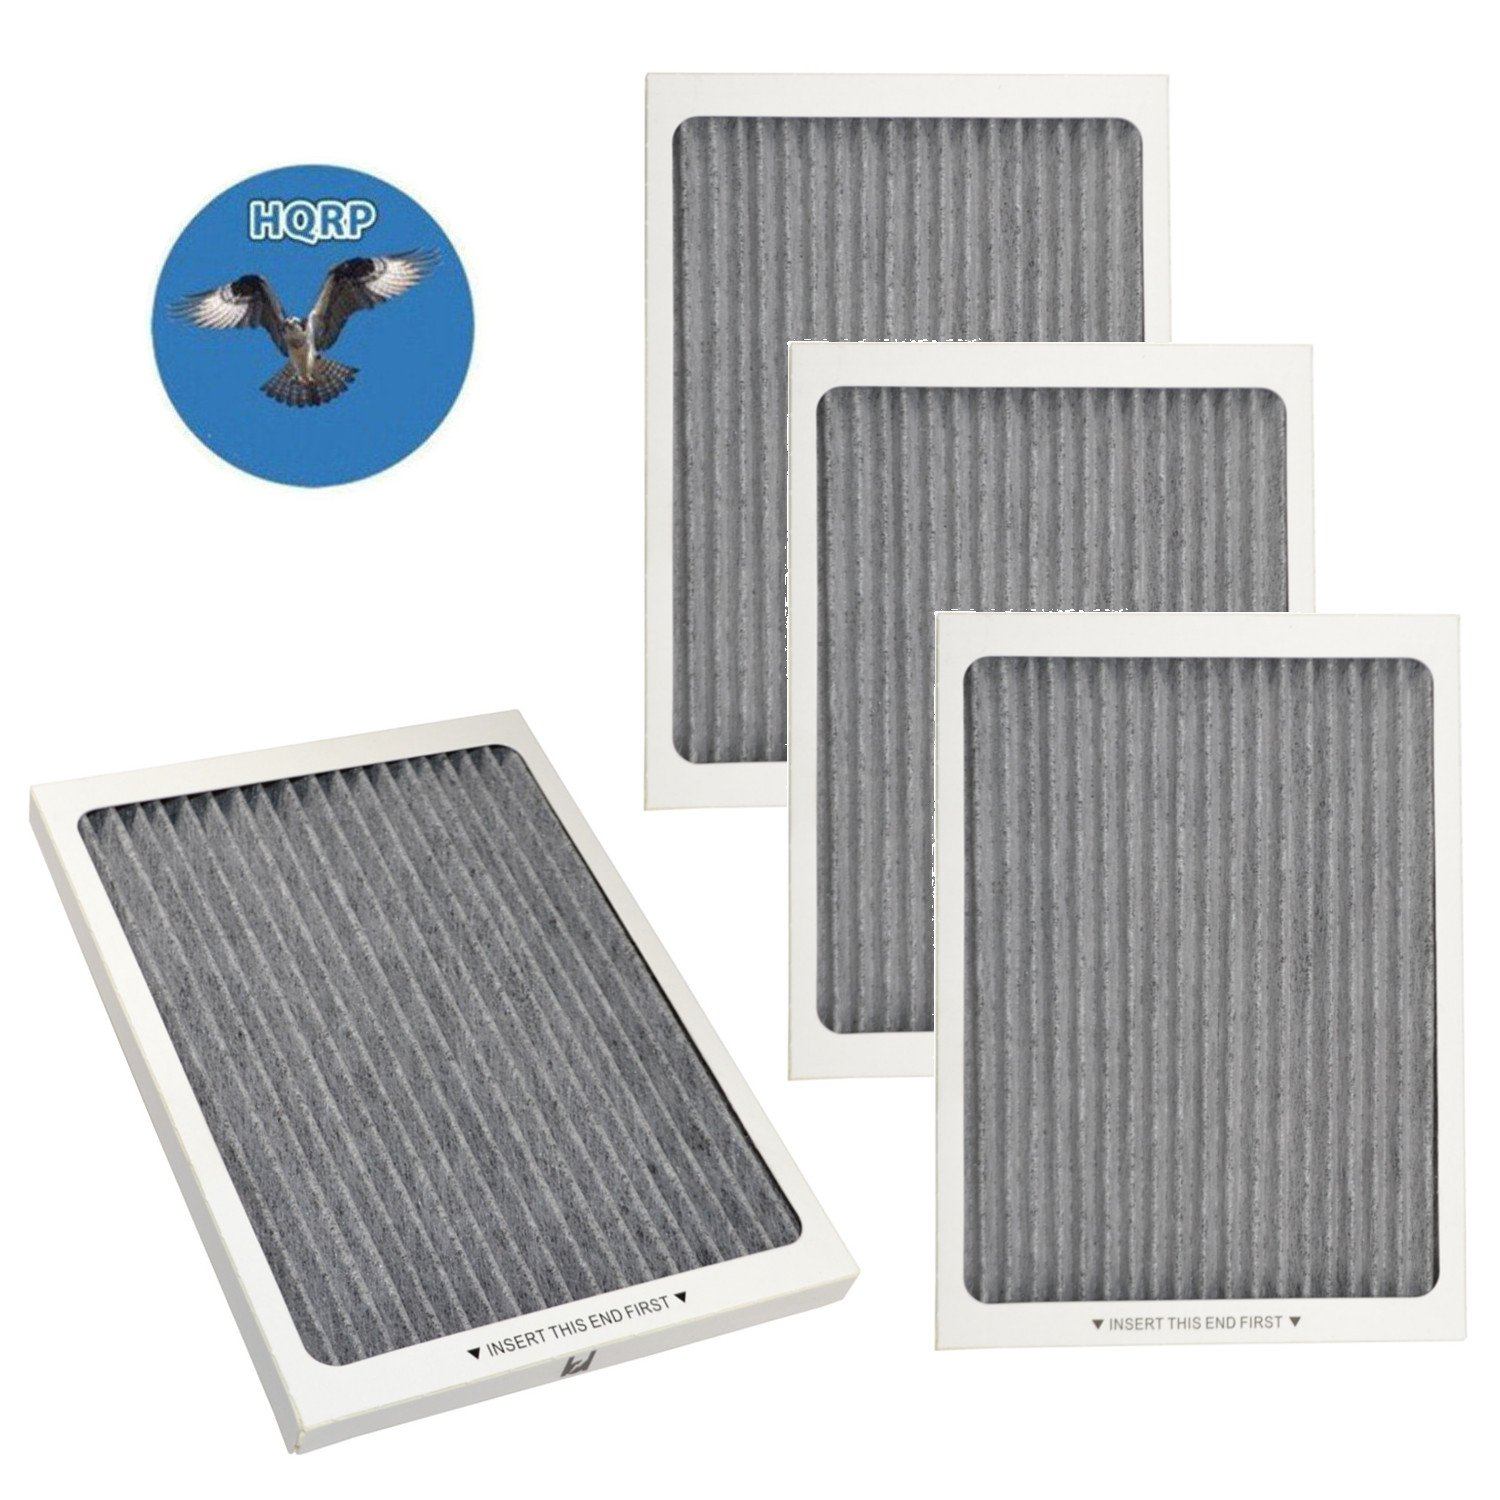 HQRP 4-pack Carbon Air Filter for Frigidaire Gallery & Professional series Side-by-Side / French door Refrigerators, EAFCBF PAULTRA Replacement + HQRP Coaster